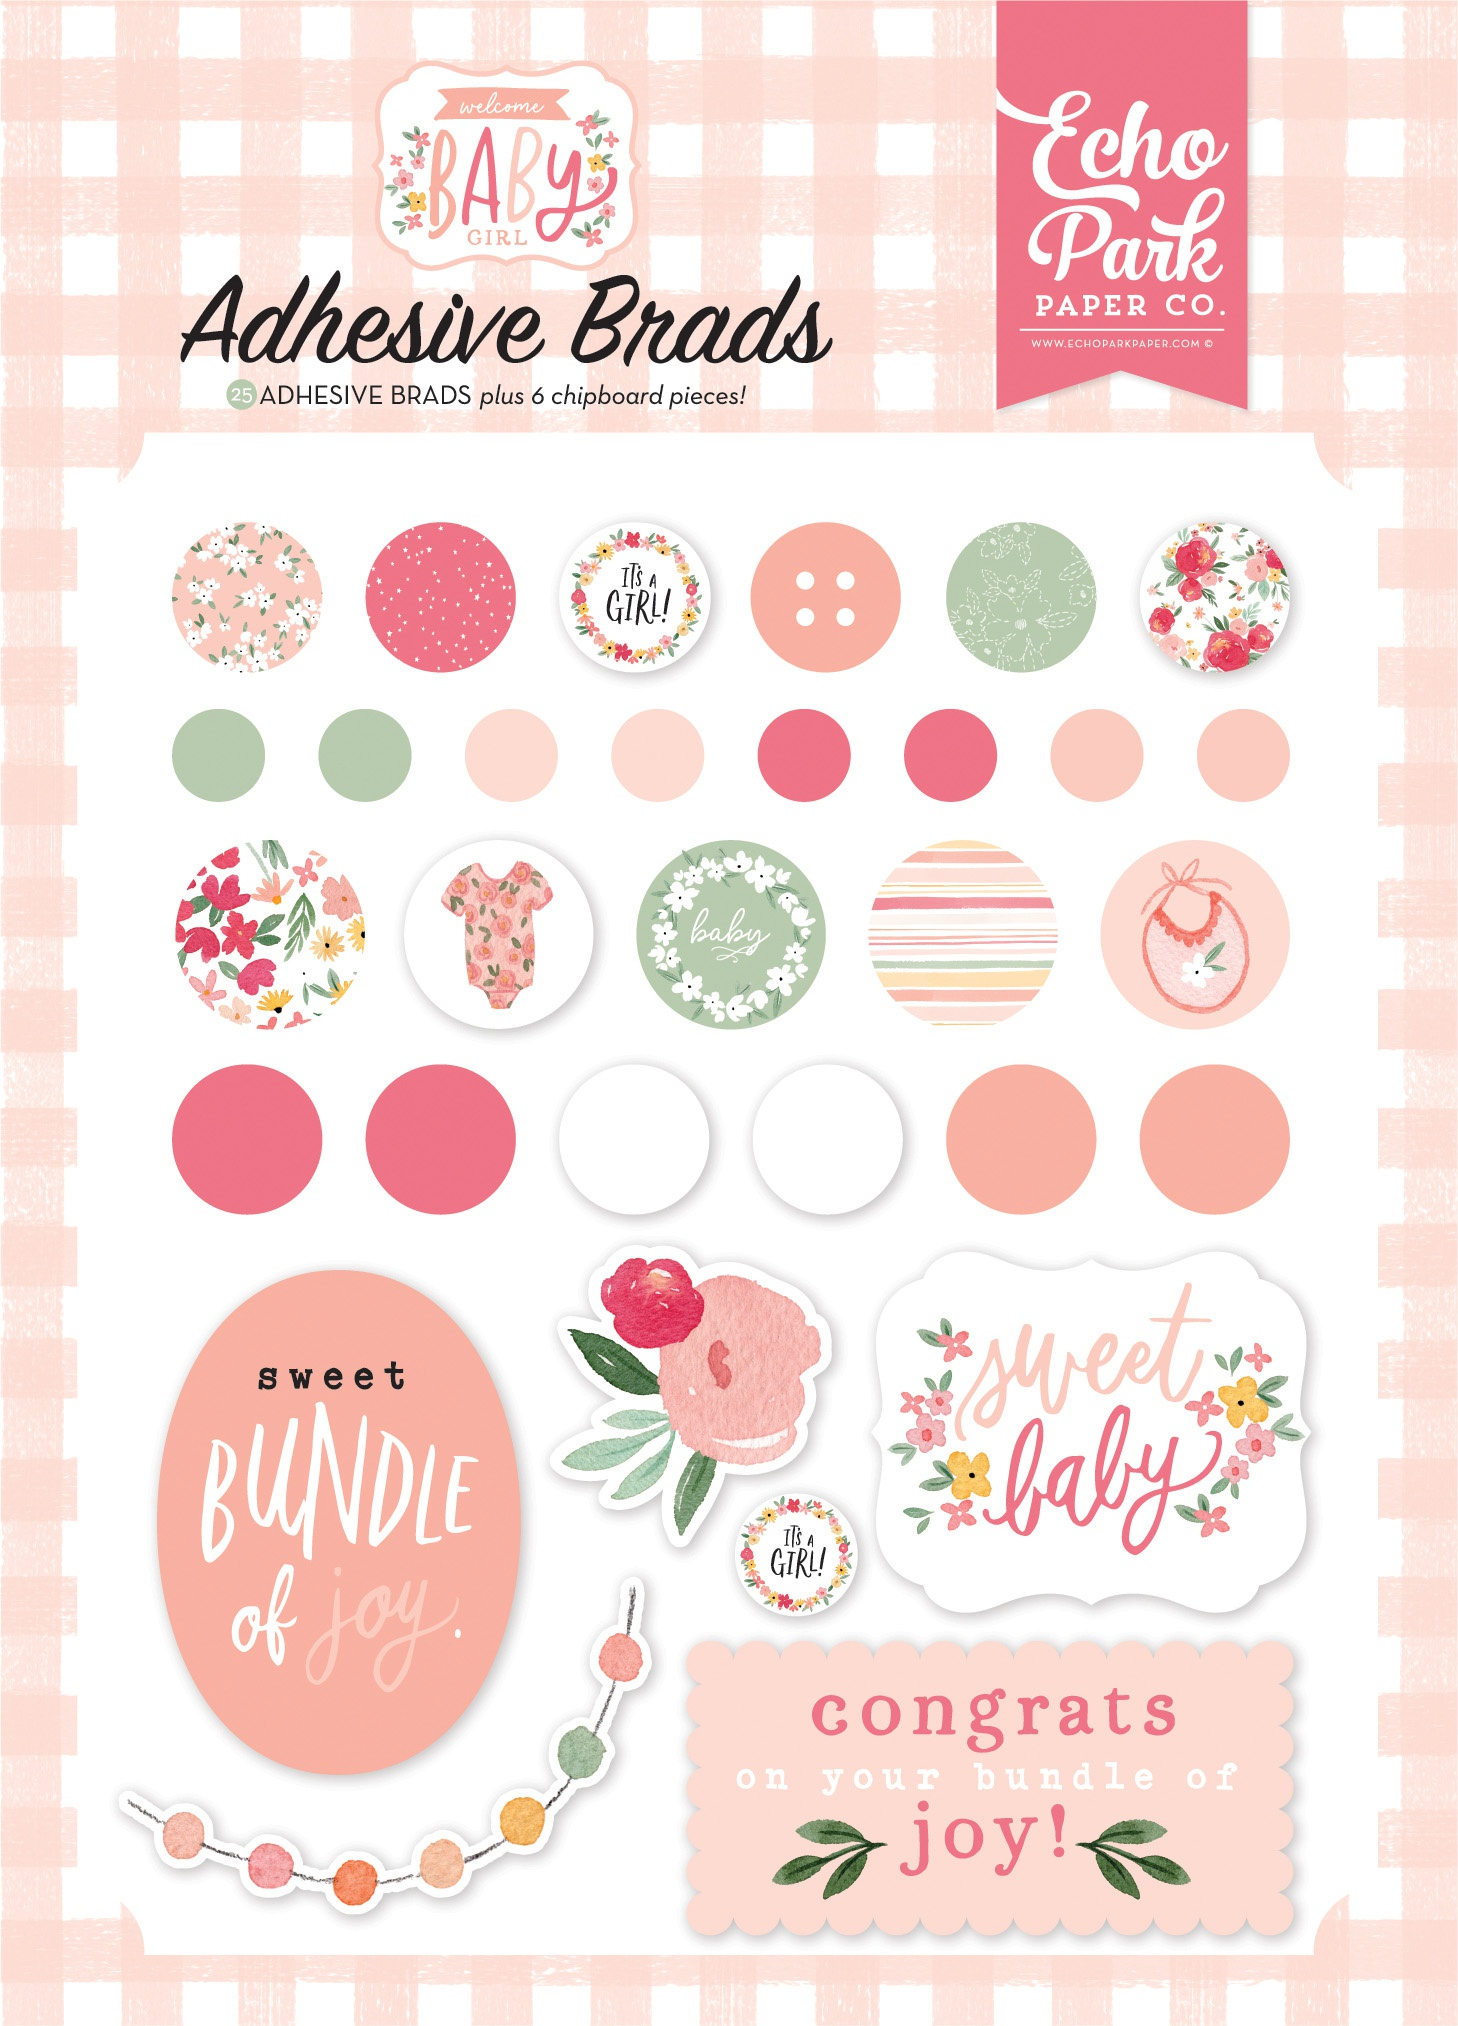 Echo Park - Welcome Baby Girl - Adhesive Brads